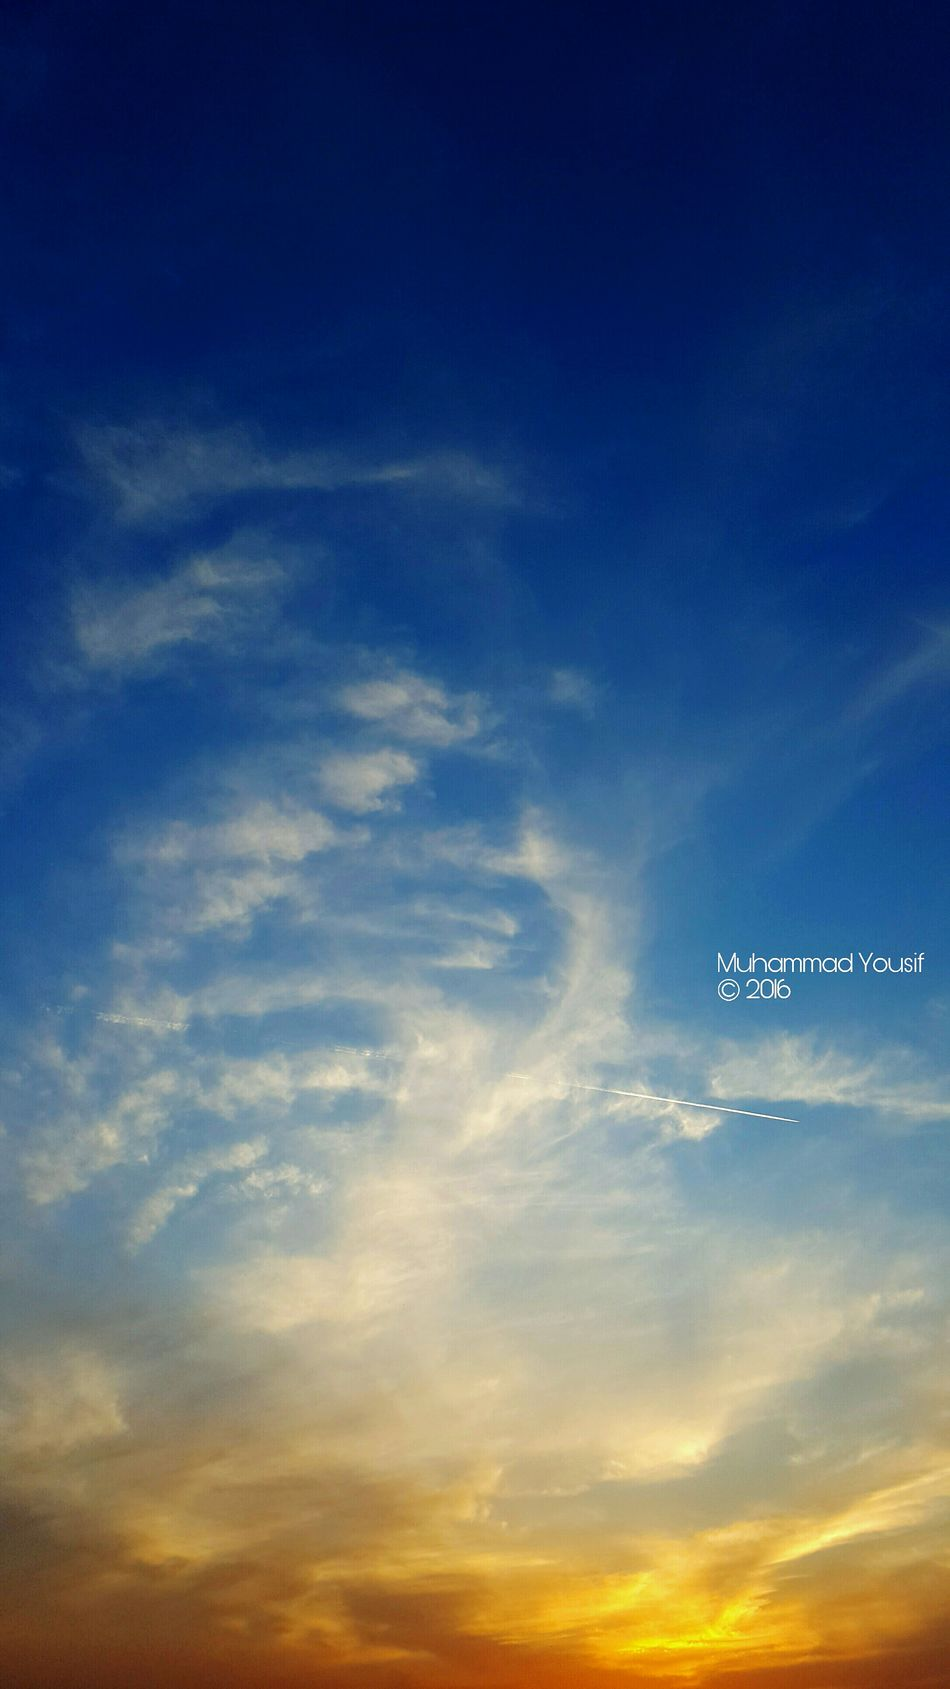 Sky Cloud - Sky No People Nature Beauty In Nature Outdoors Day Astronomy New Place New Photo Love Photograph Photographic Memory Photographer Photo Photography Sky And Clouds Sky Photography